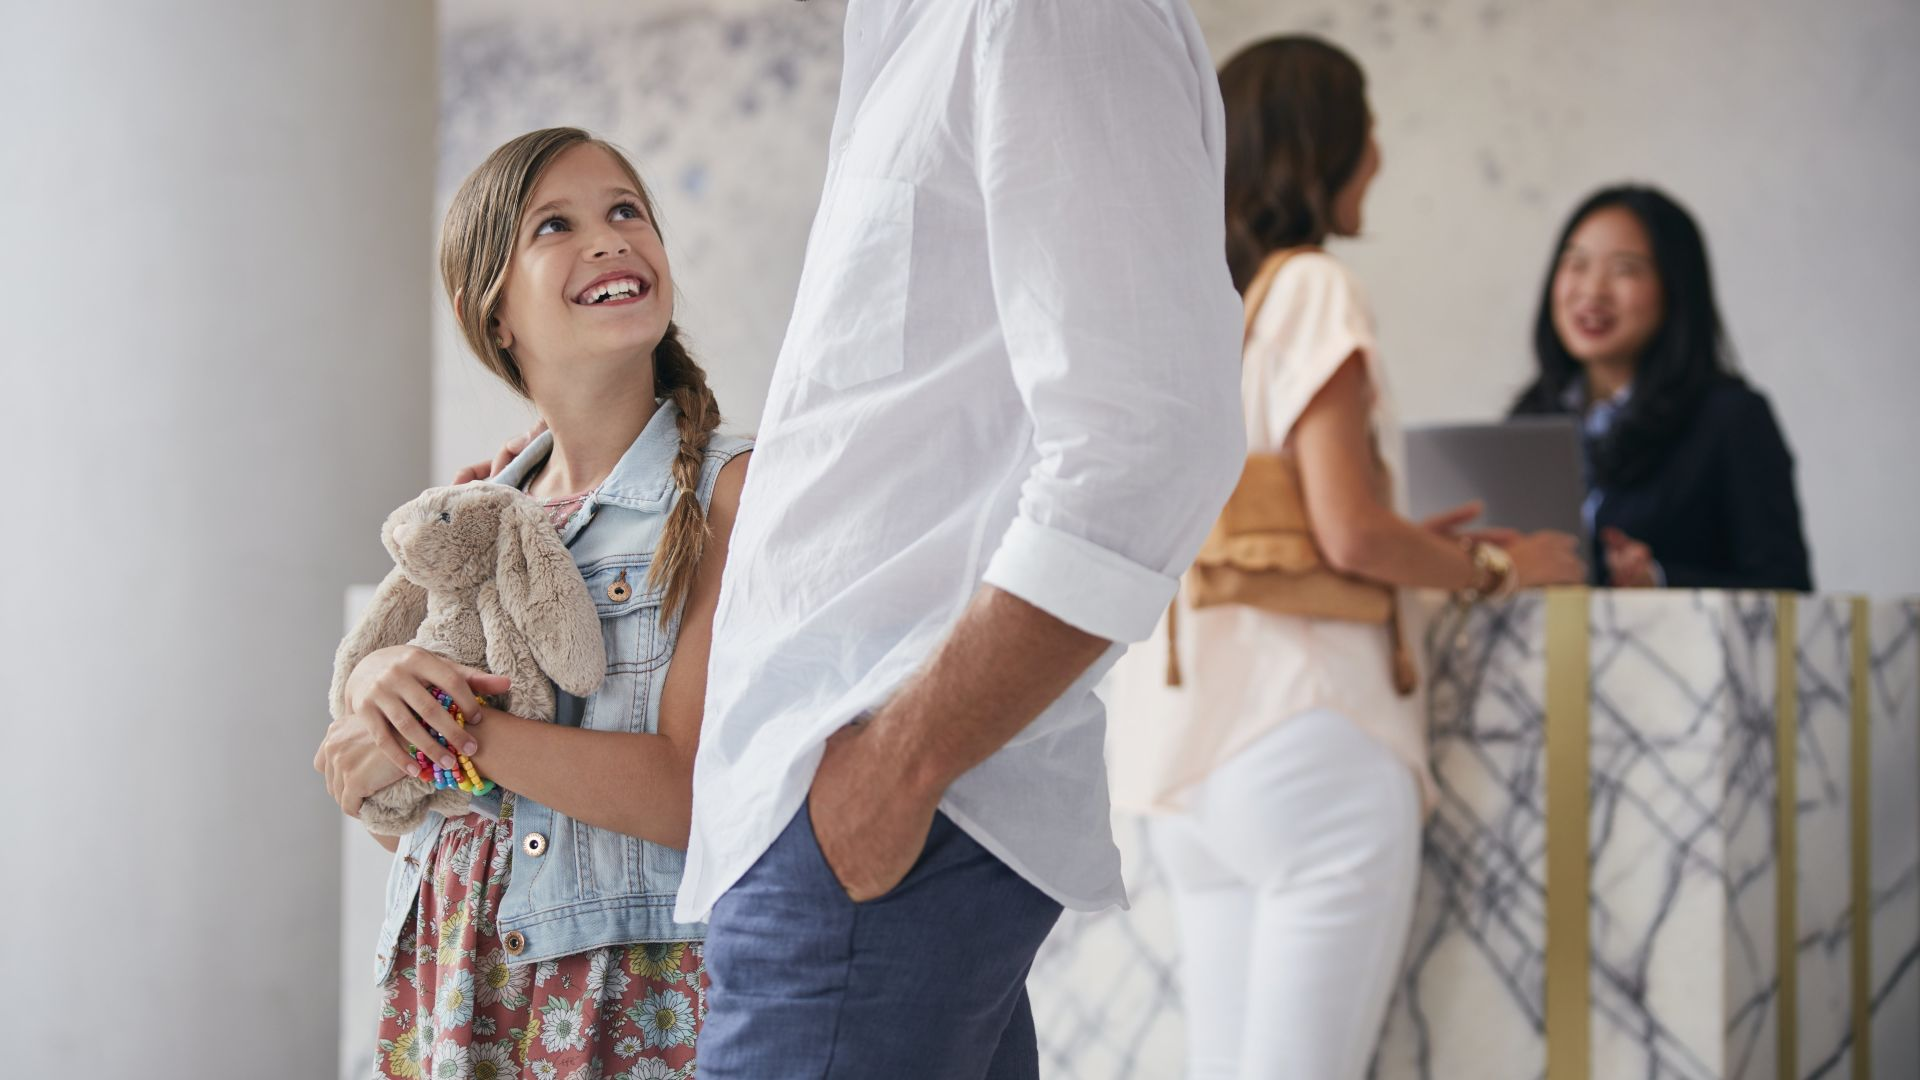 <strong> Loews Loves Families | The whole family is welcome at Loews Hotels </strong>|A Wonderful|Place to Wander|Make Memories